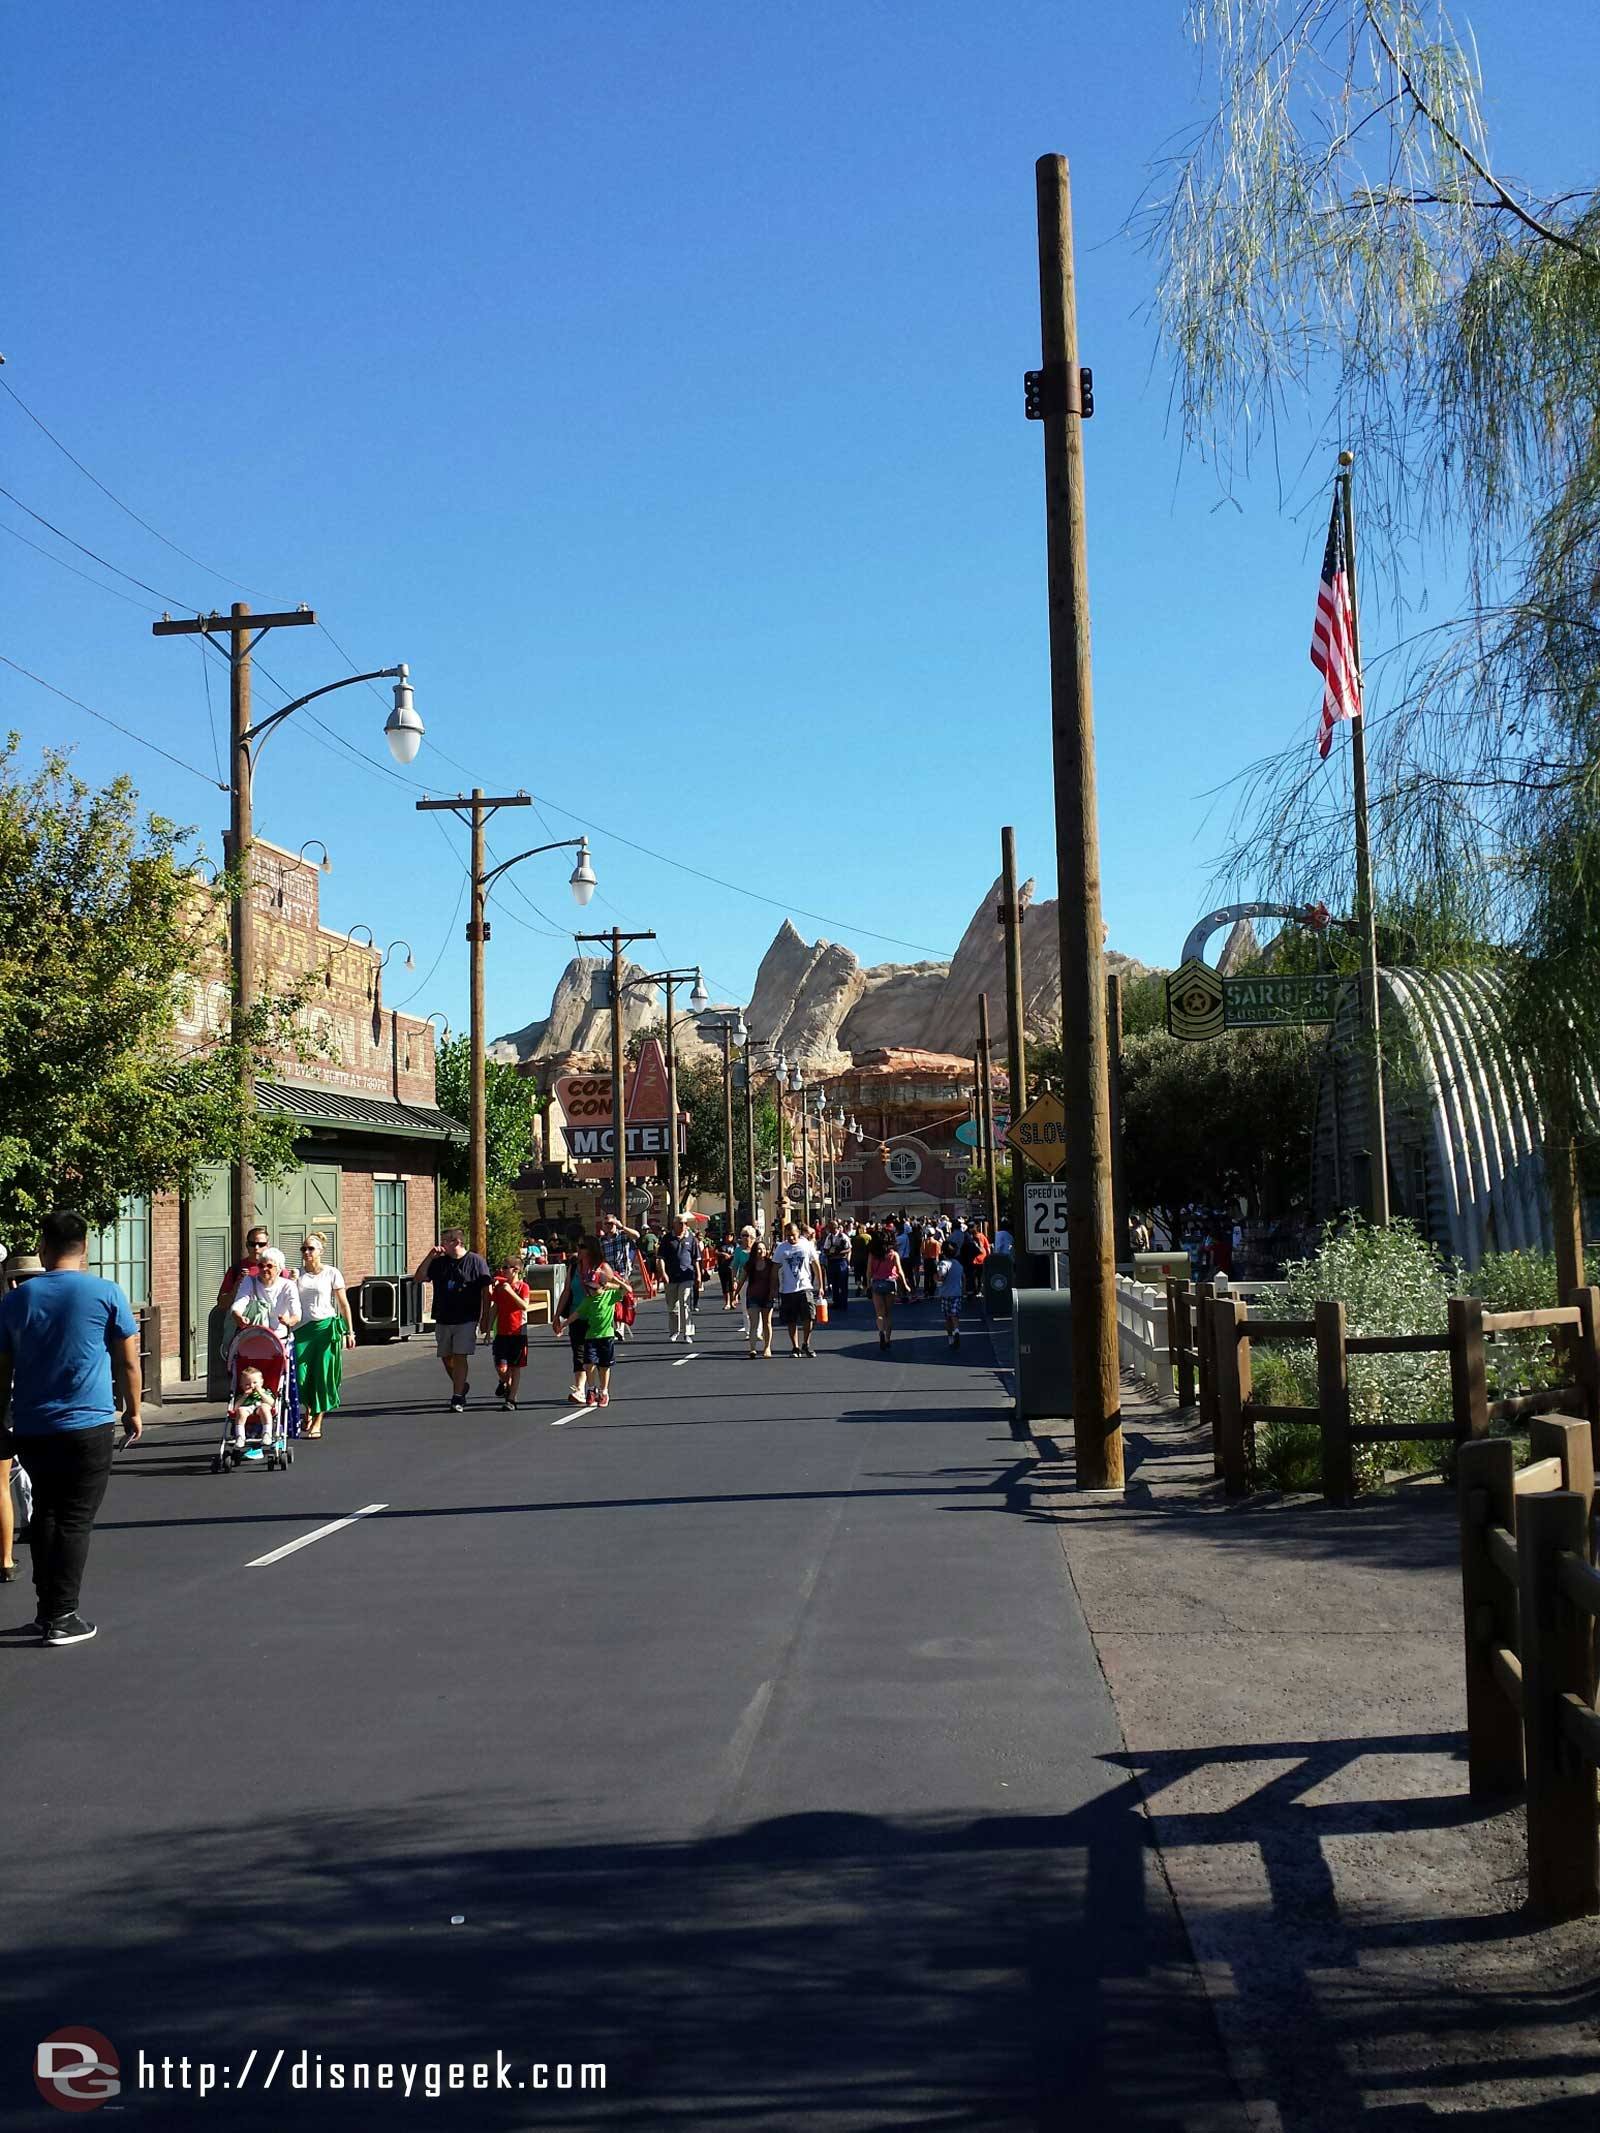 #CarsLand is preparing for Christmas the poles for the garland and lights on Route 66 are in place